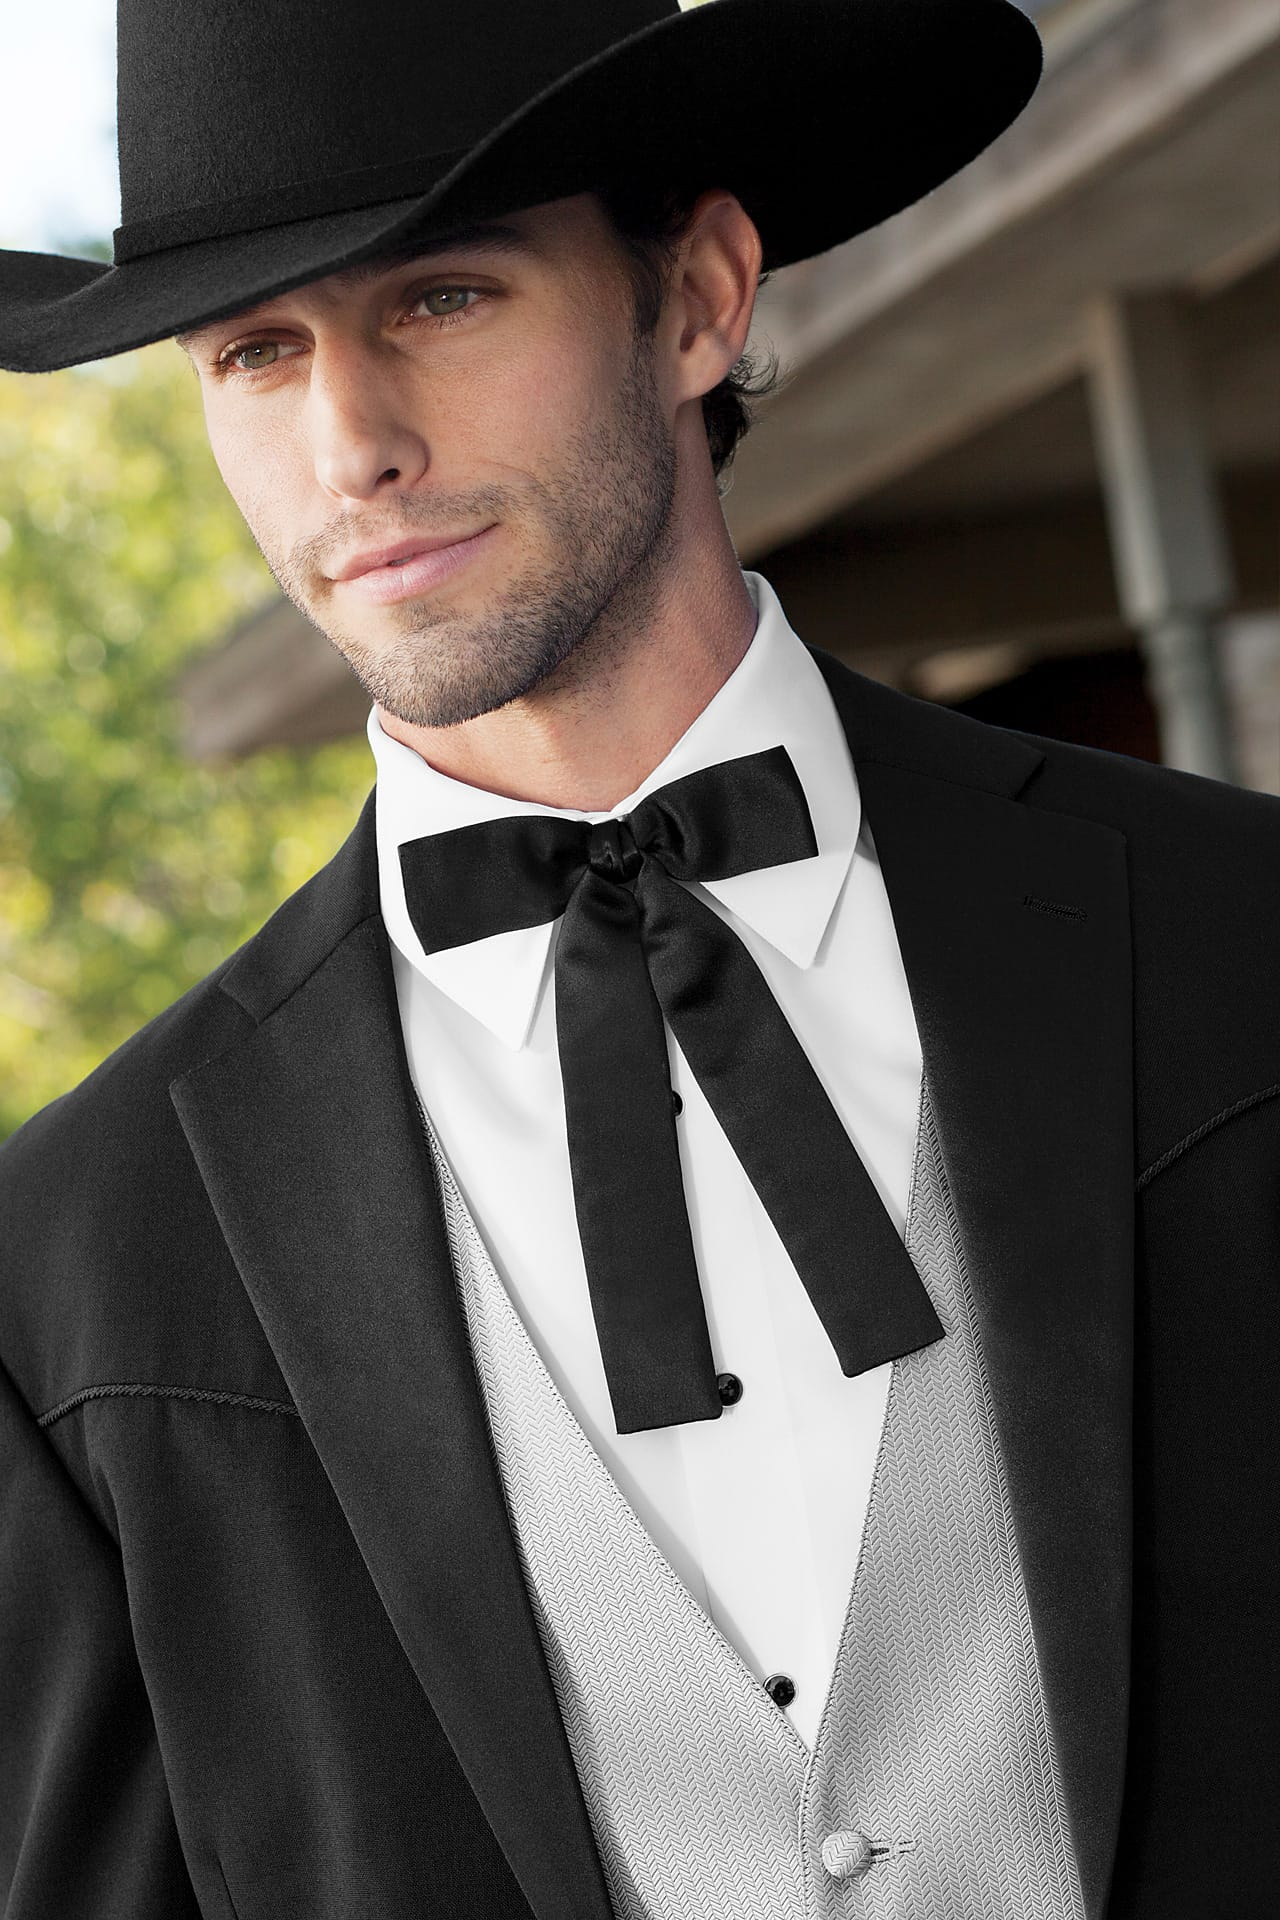 Western Black String Tie Jim S Formal Wear